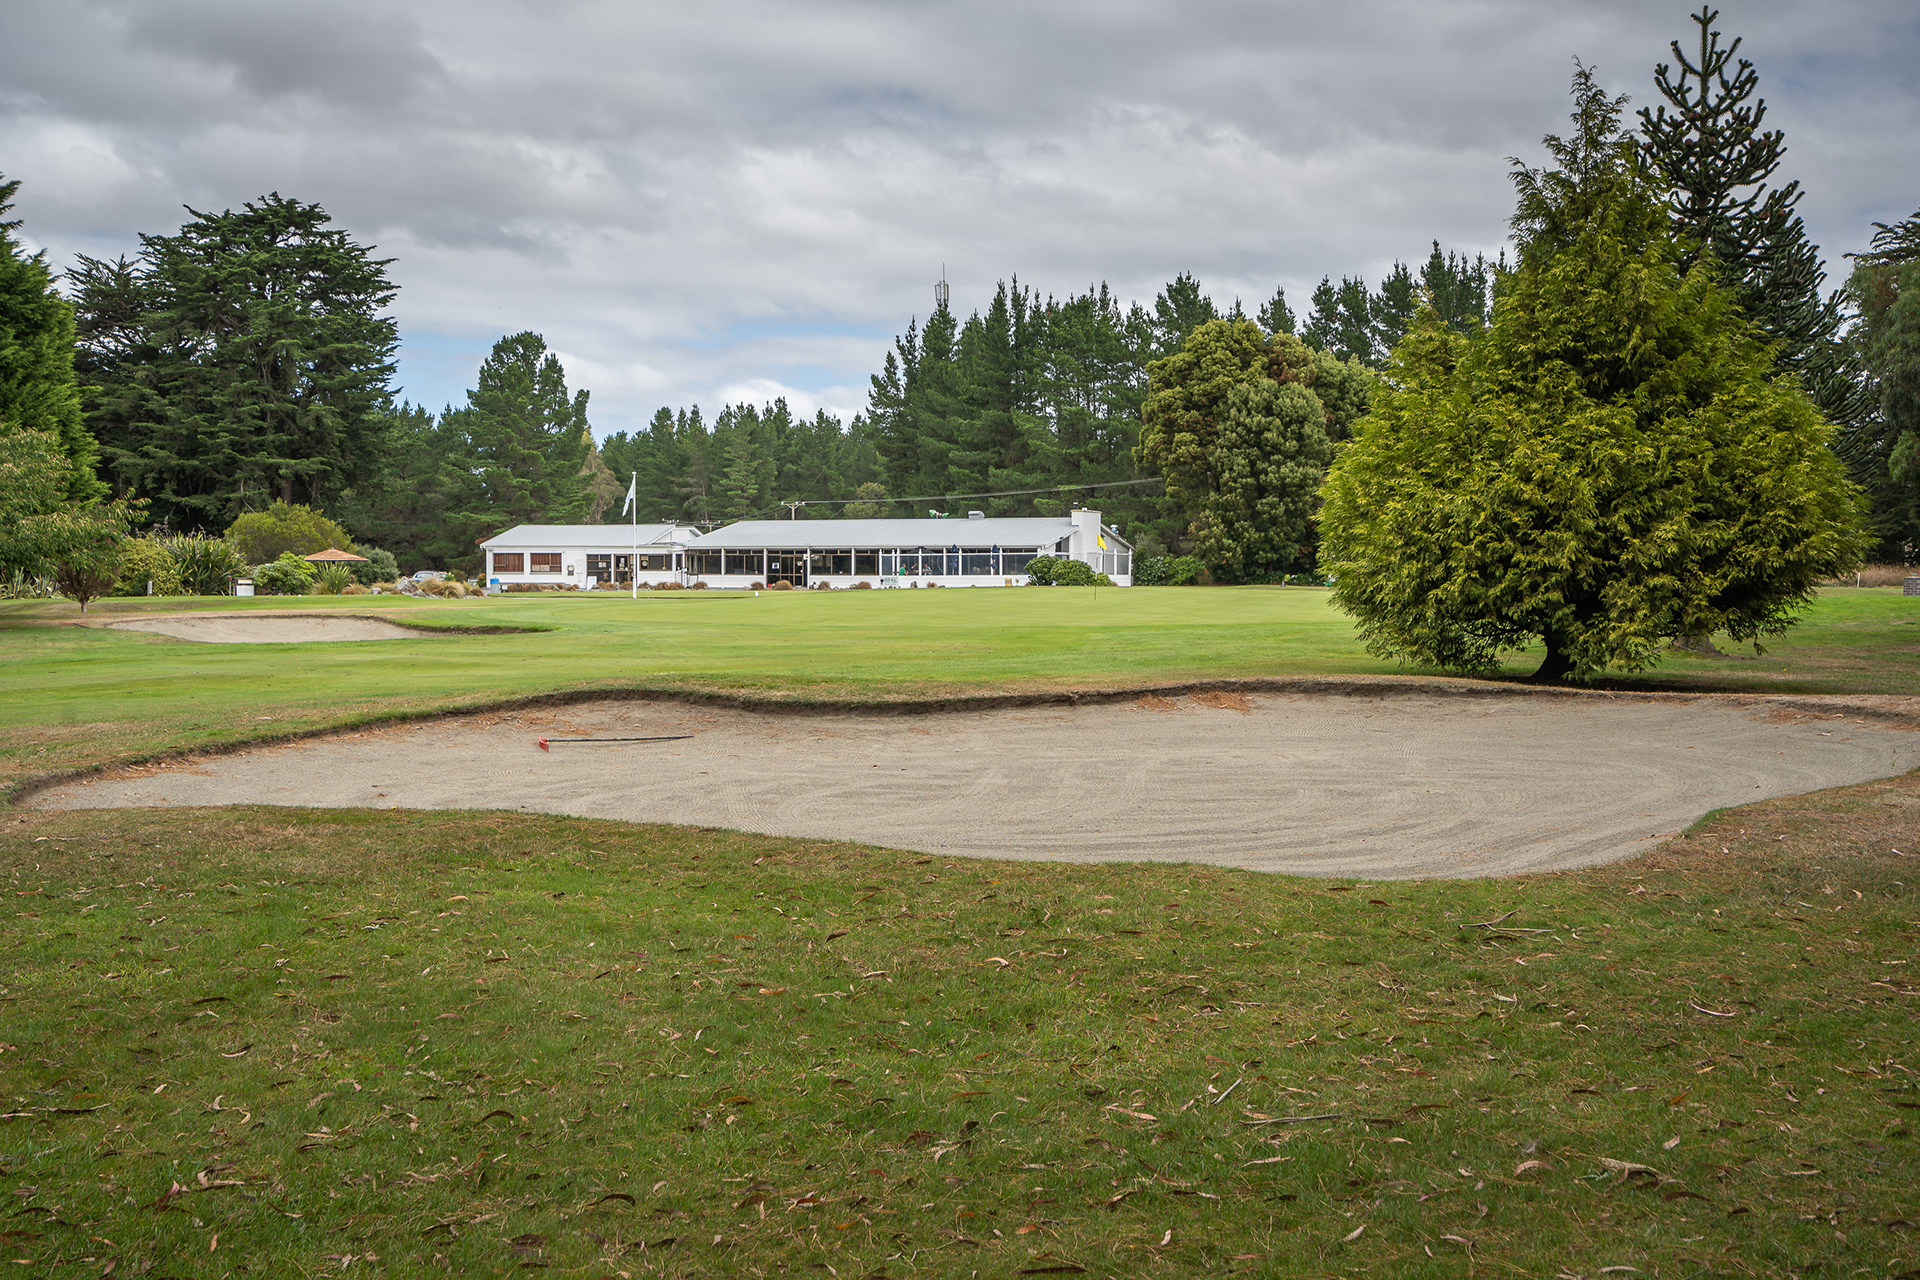 McLeans Island Golf Club